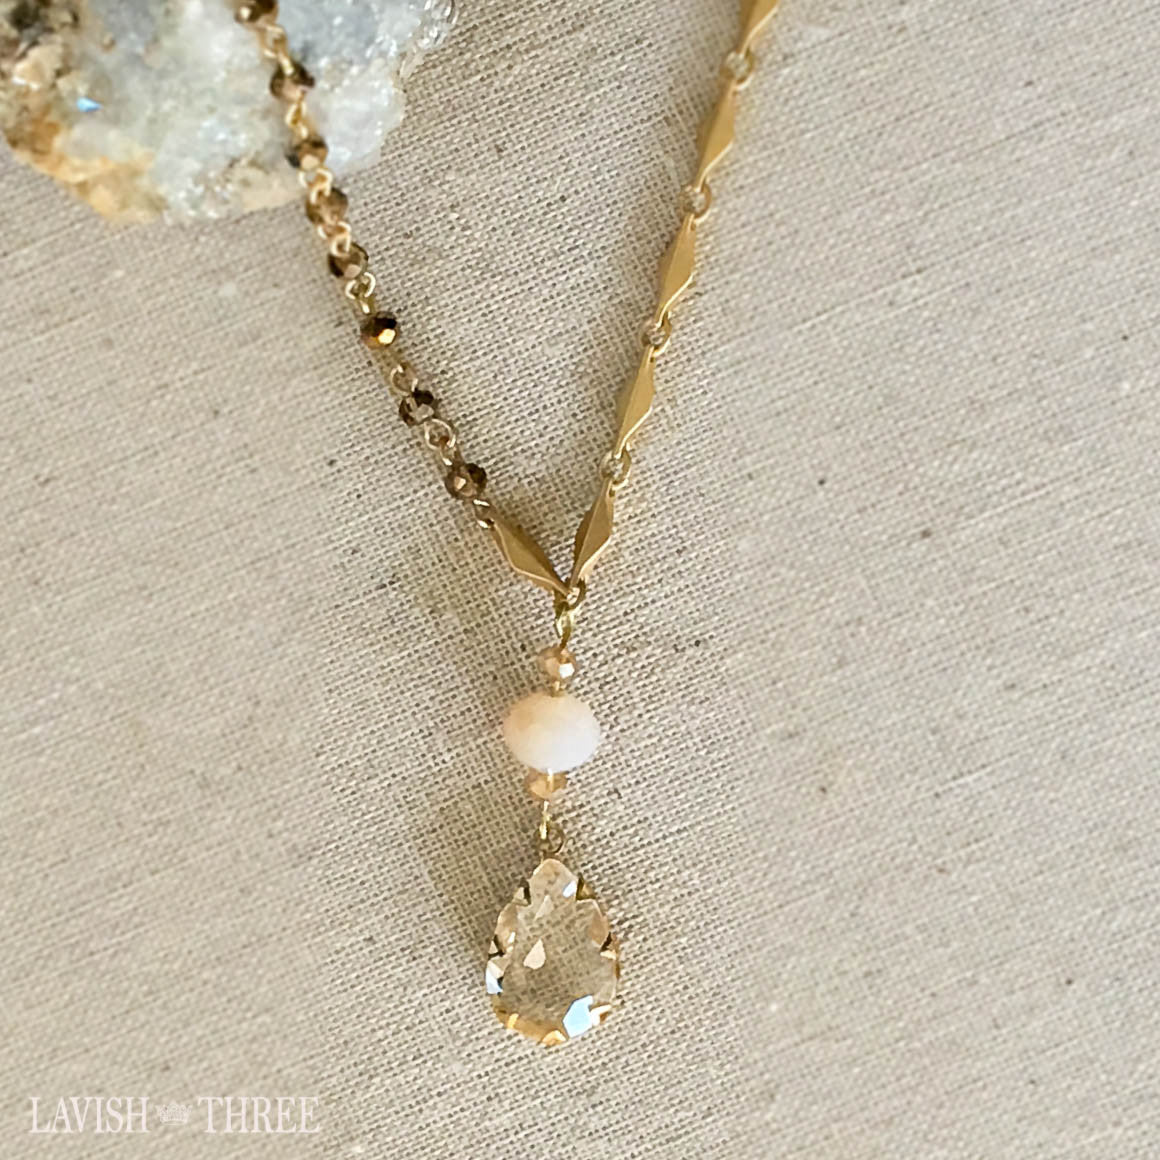 brushed gold short necklace, large crystal teardrop pendant, Lavish Three